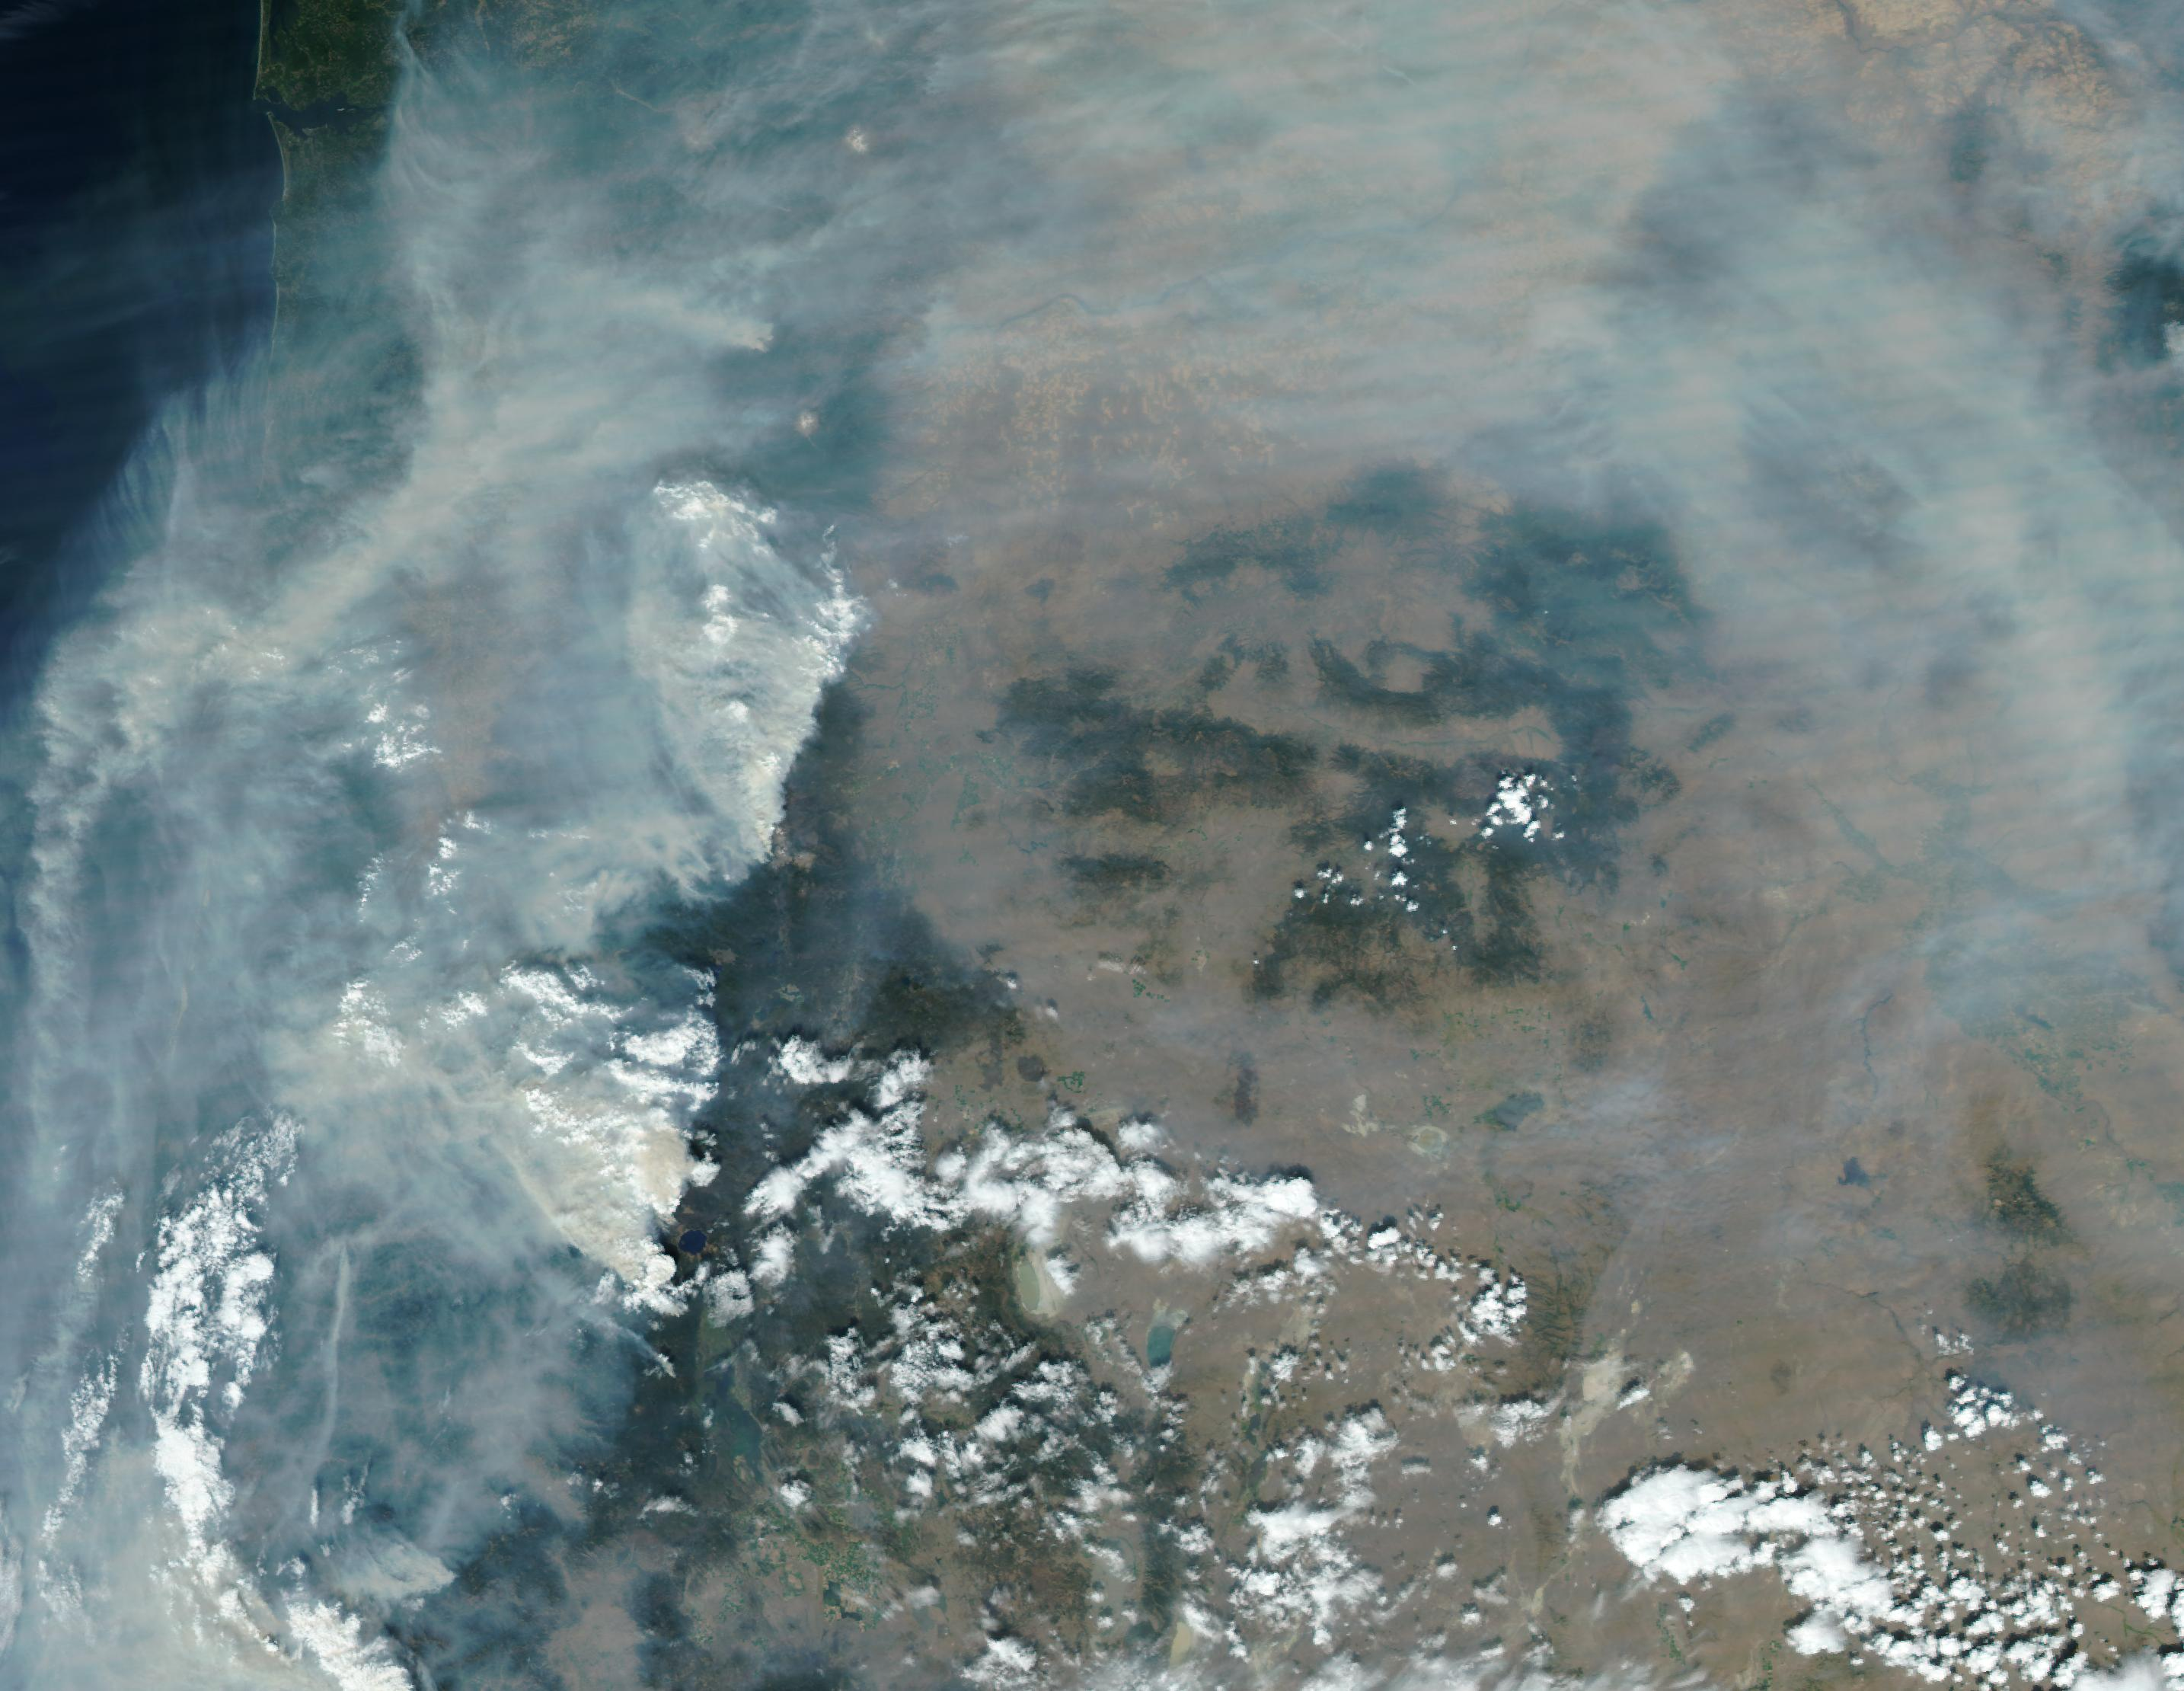 NASA satellite image shows Oregon on September 4, 2017. Air quality in Western Oregon ranges into the Unhealthy and even Hazardous categories over the Labor Day weekend thanks to smoke from forest fires.